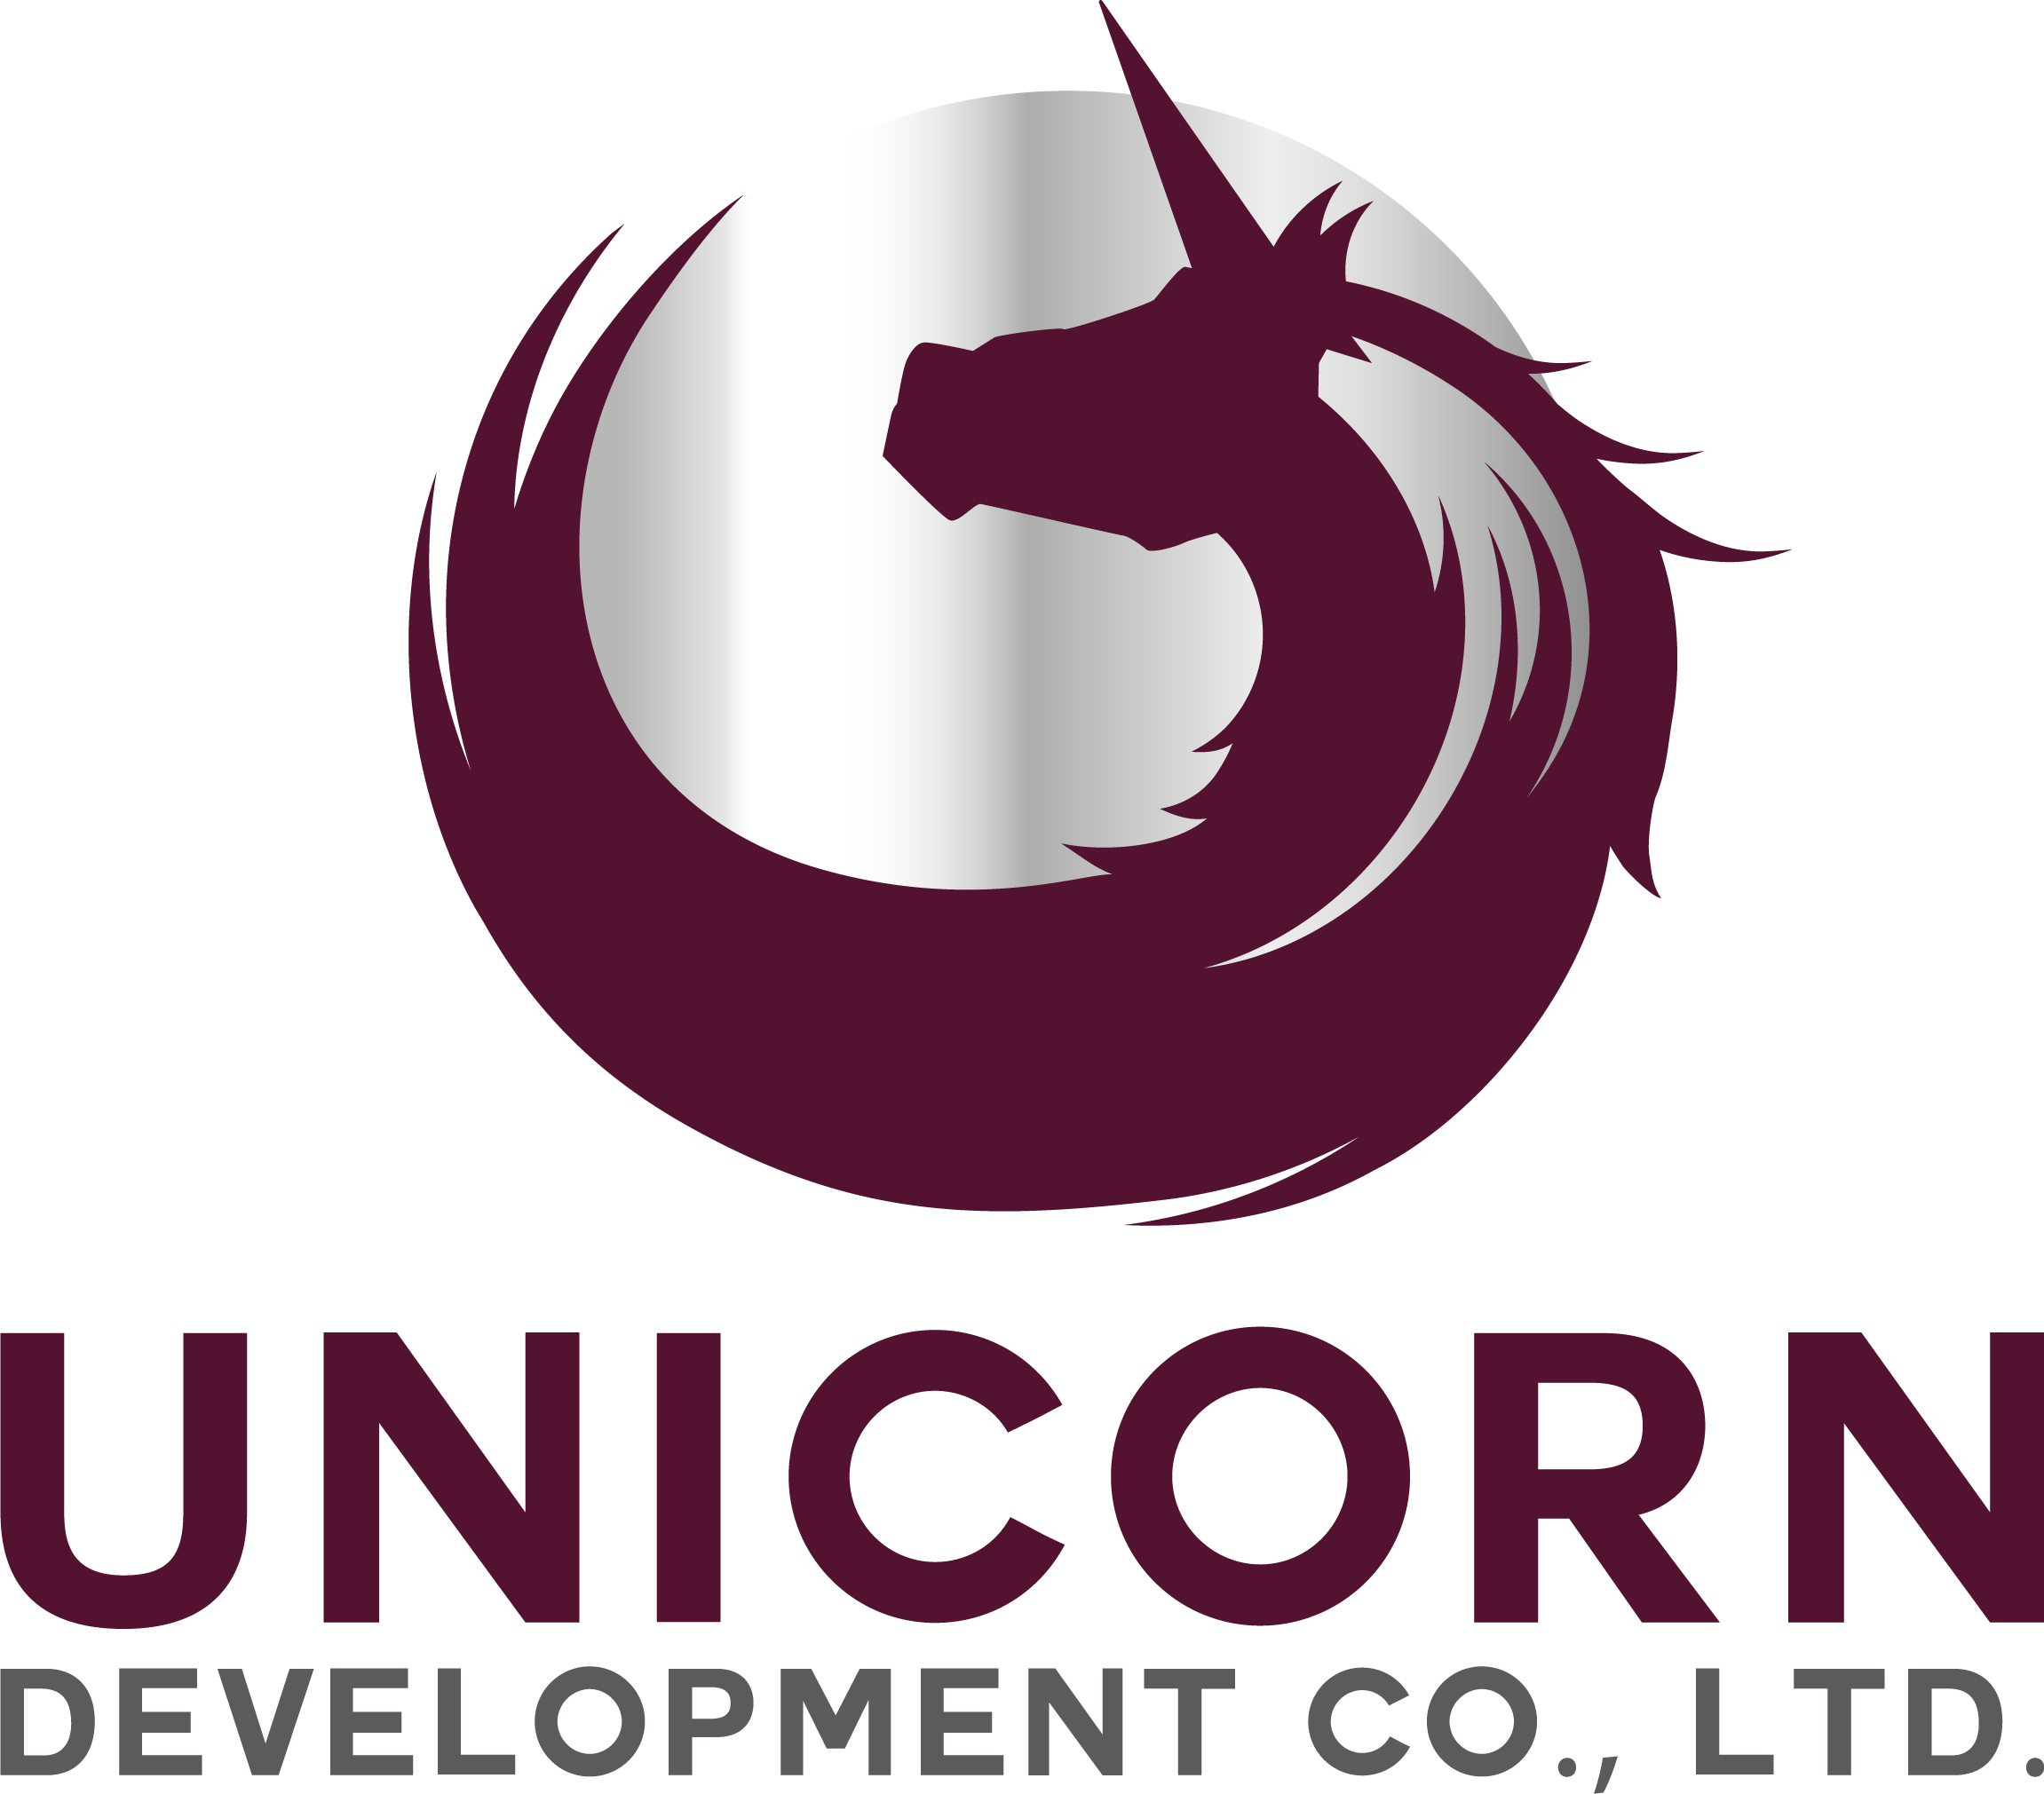 Unicorn Development